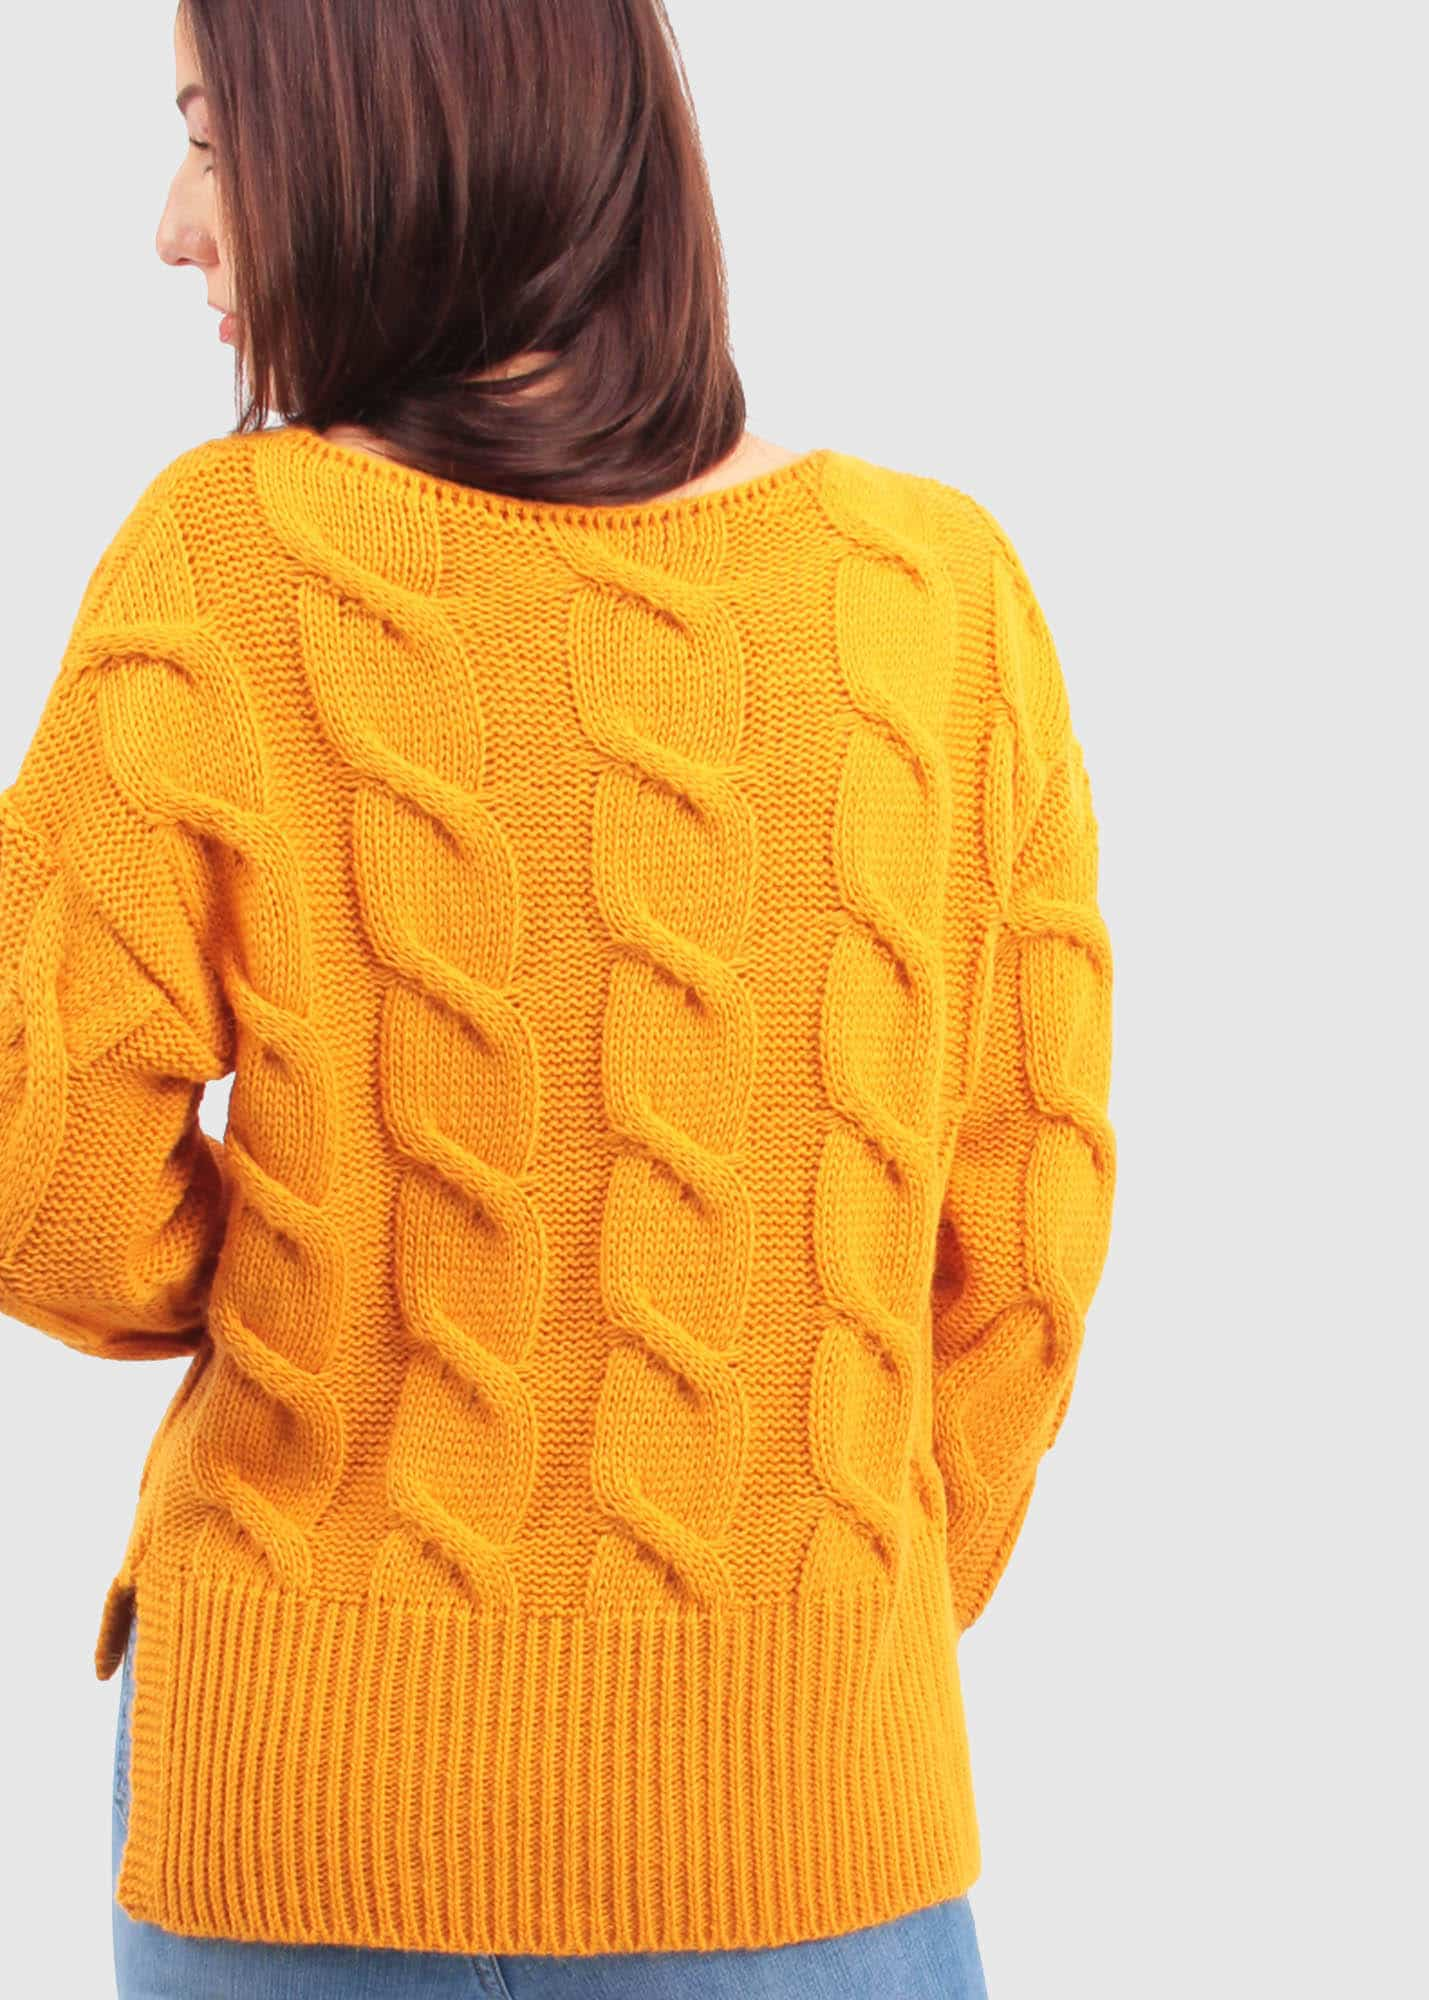 Photo №1 Apollonia Giallo sweater